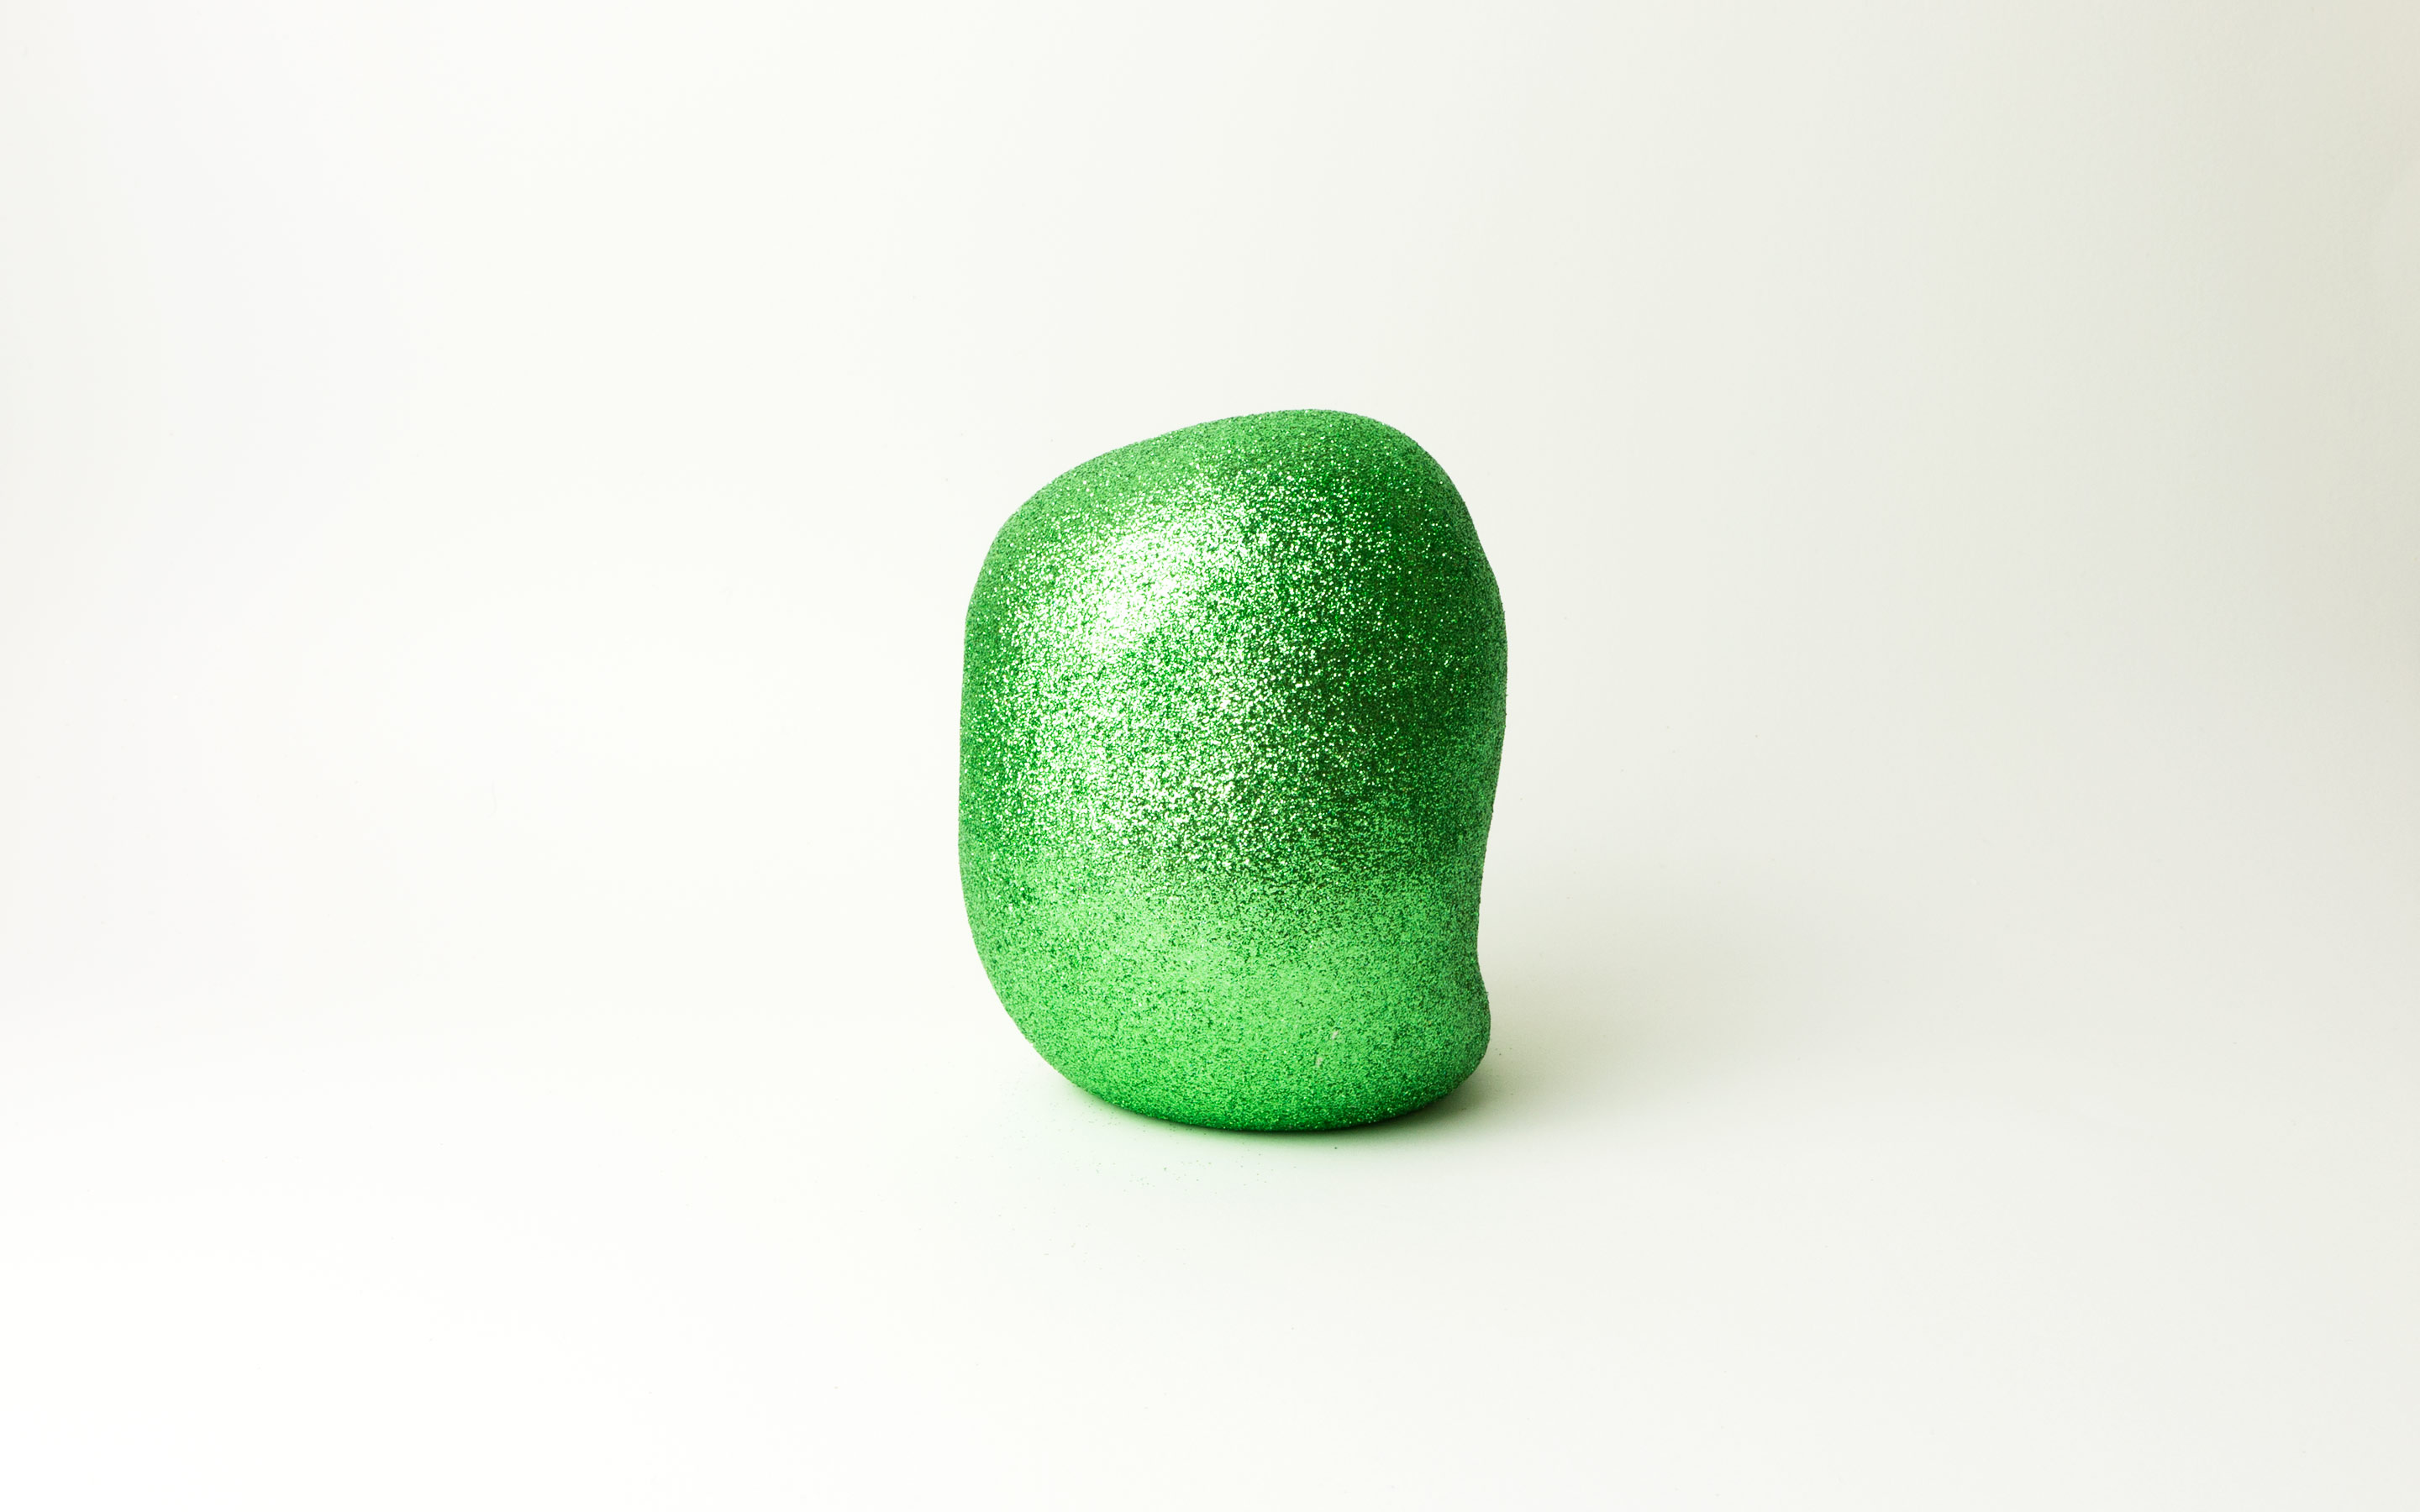 sc_2019_EmeraldGreenFigure_Take02_04